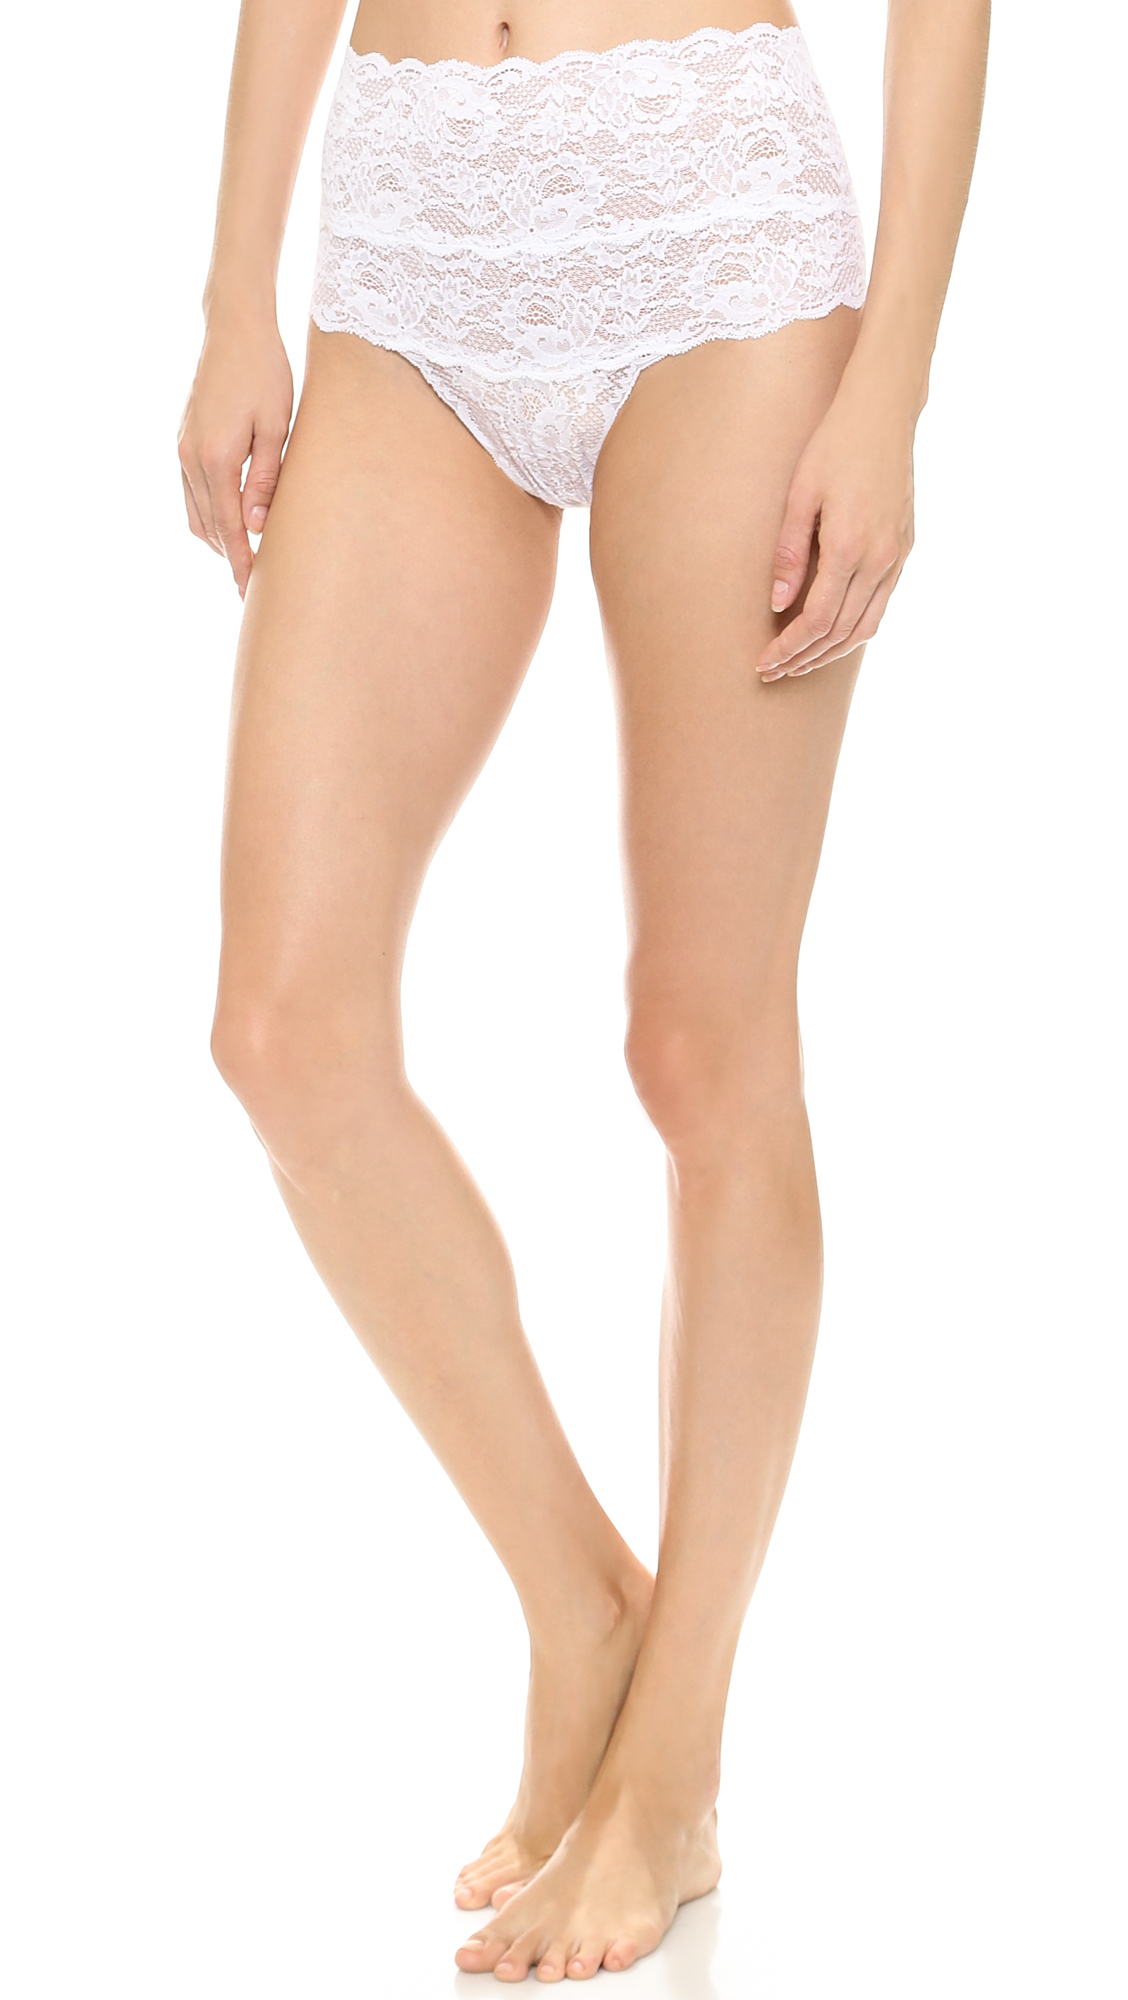 cosabella female 45883 cosabella never say never high rise thong white